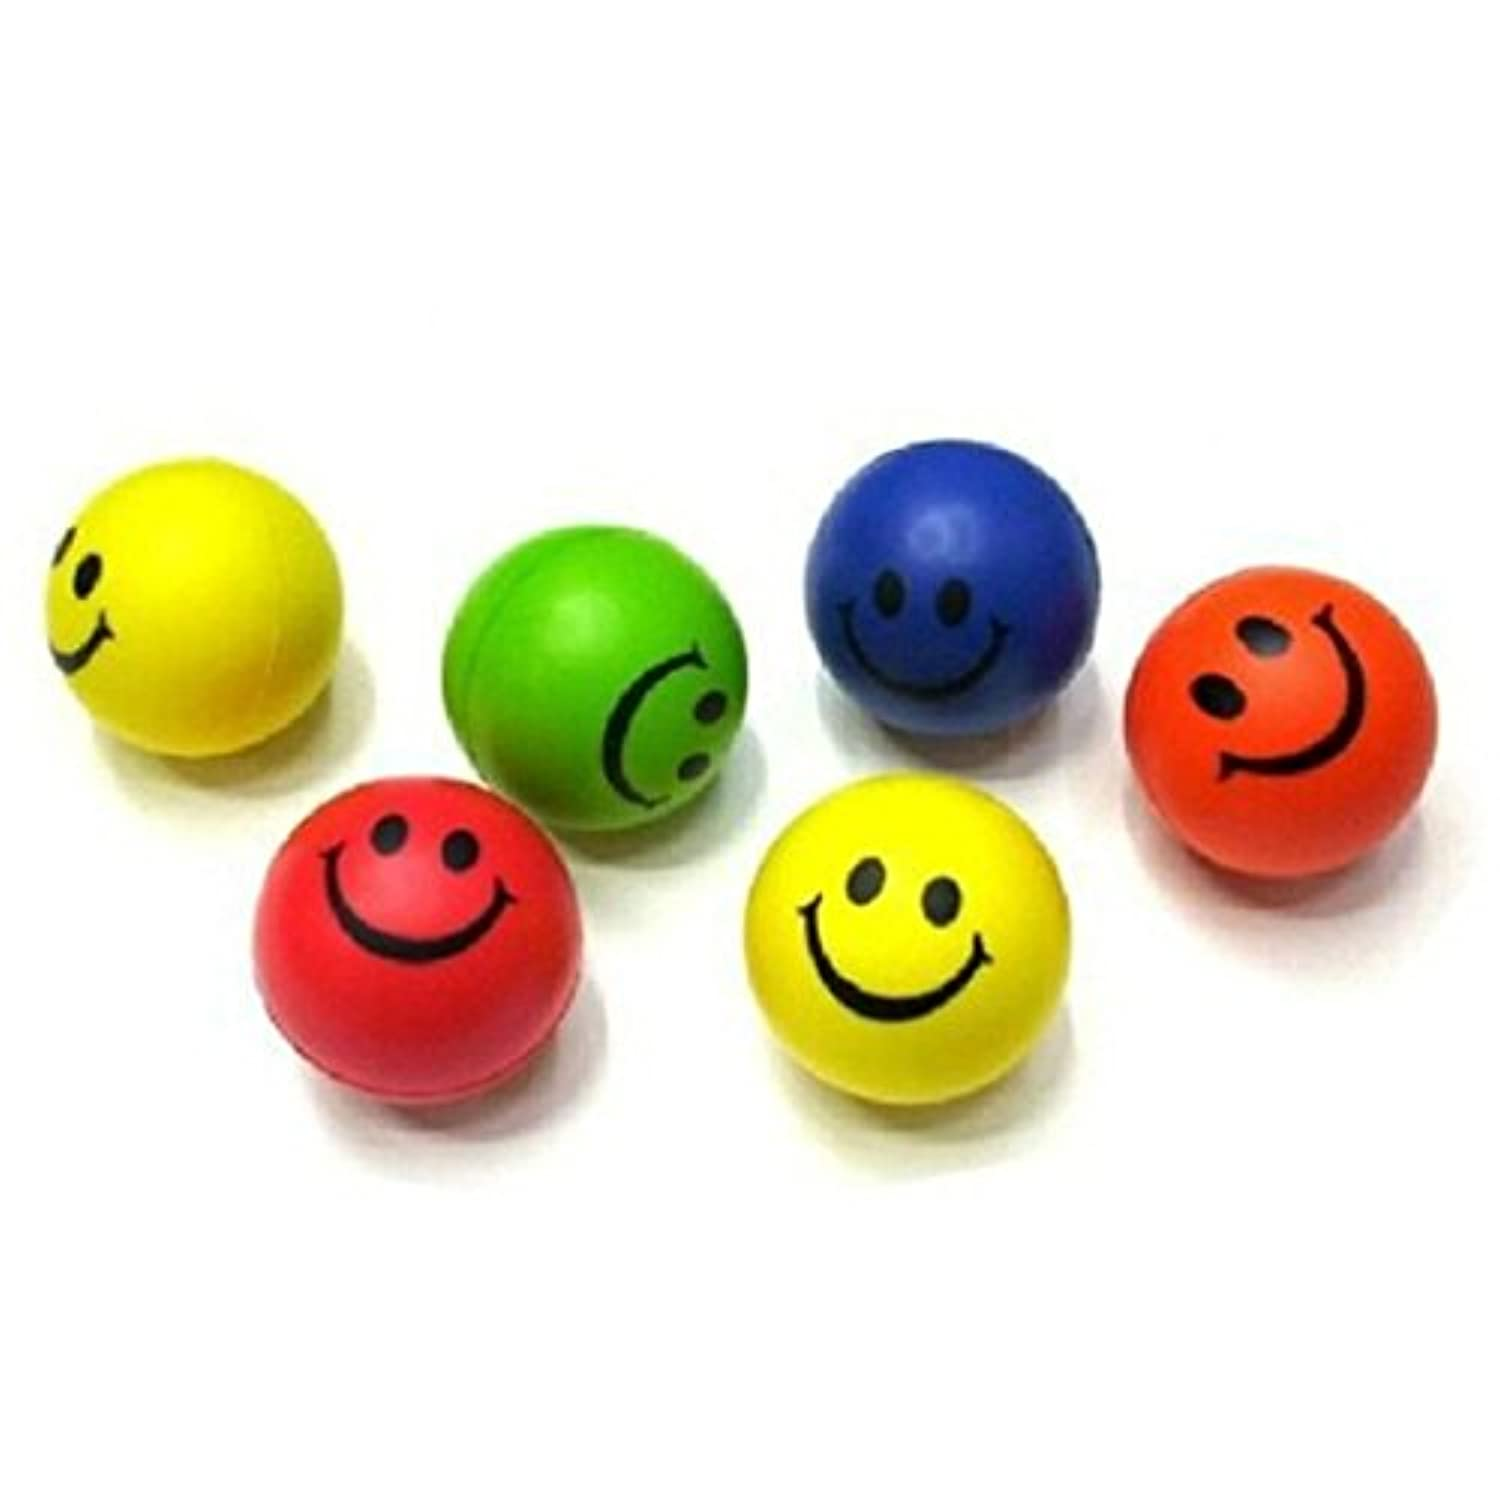 XUANOU Mini Smile Face Ball Relieve Pressure Relaxable Toy